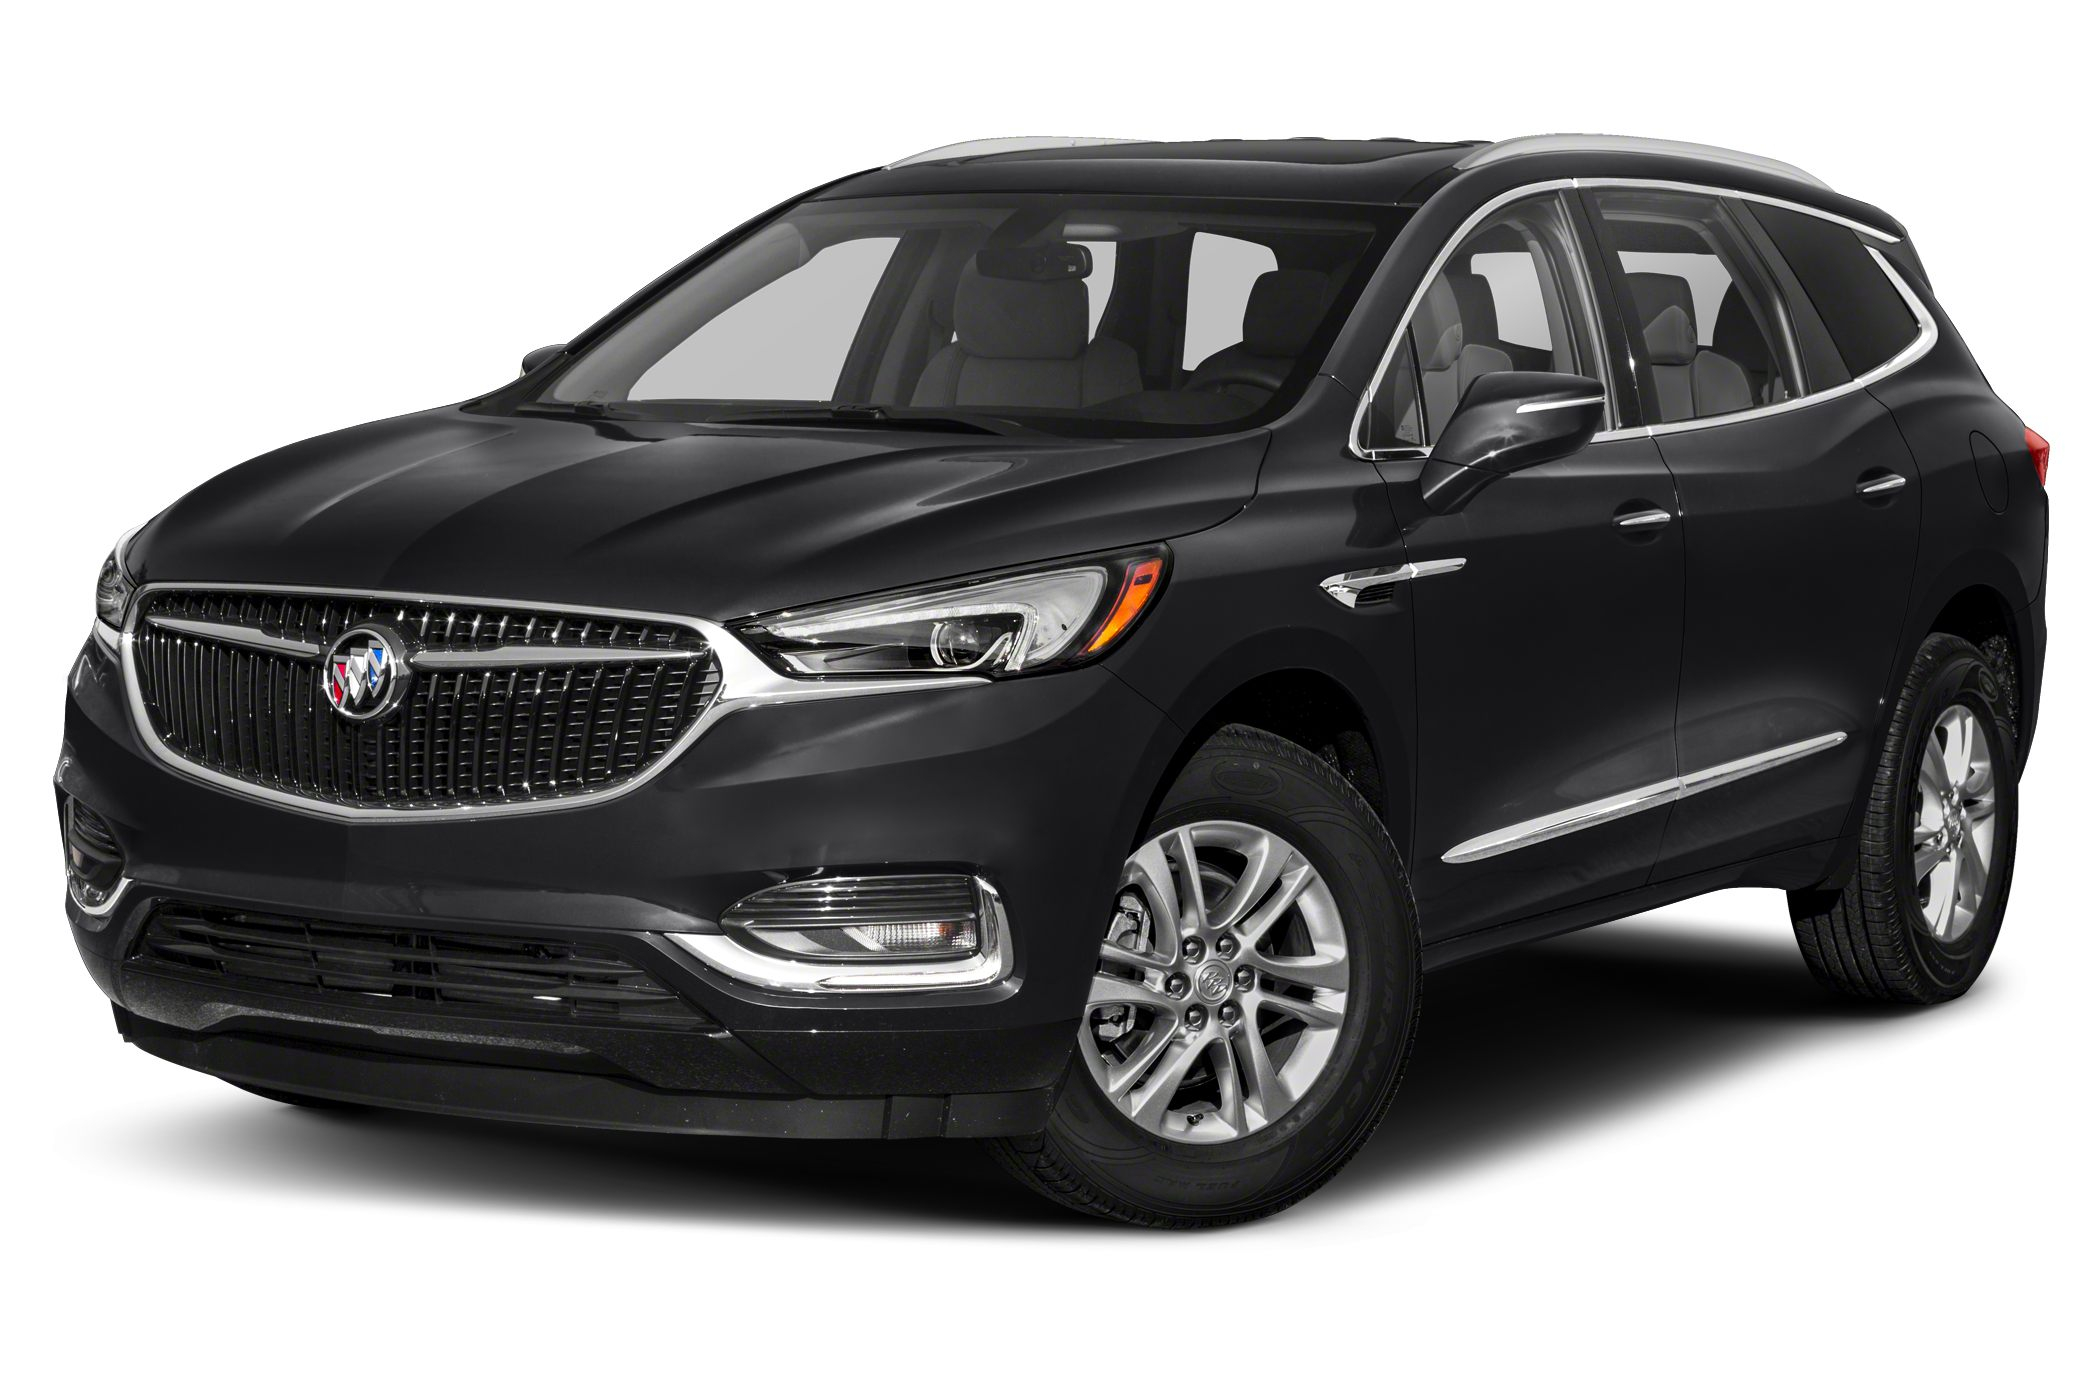 2020 Buick Enclave Deals, Prices, Incentives & Leases New 2021 Buick Enclave Length, Leather, Lease Price